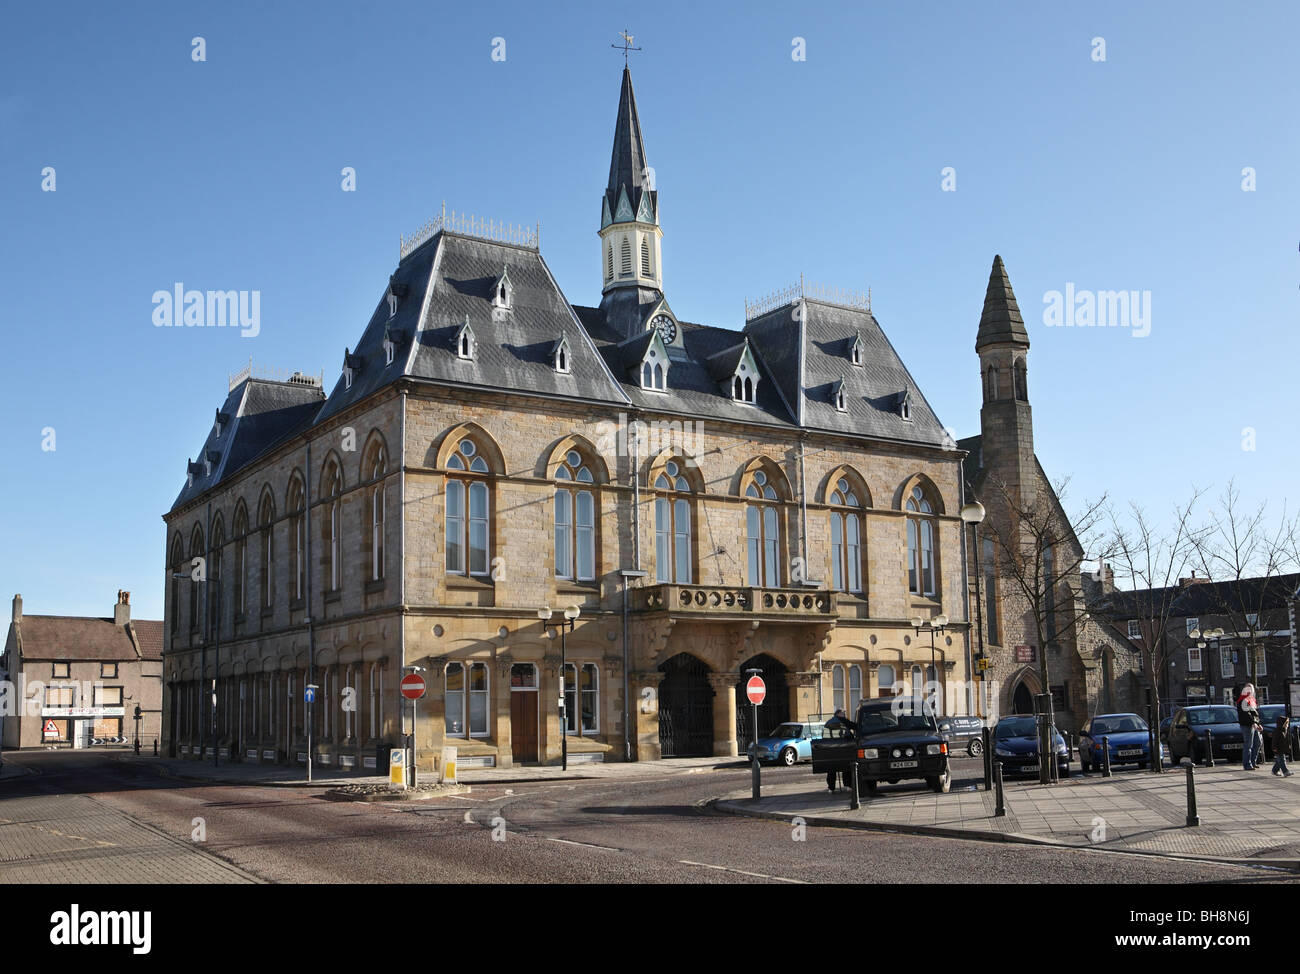 Bishop auckland durham united kingdom